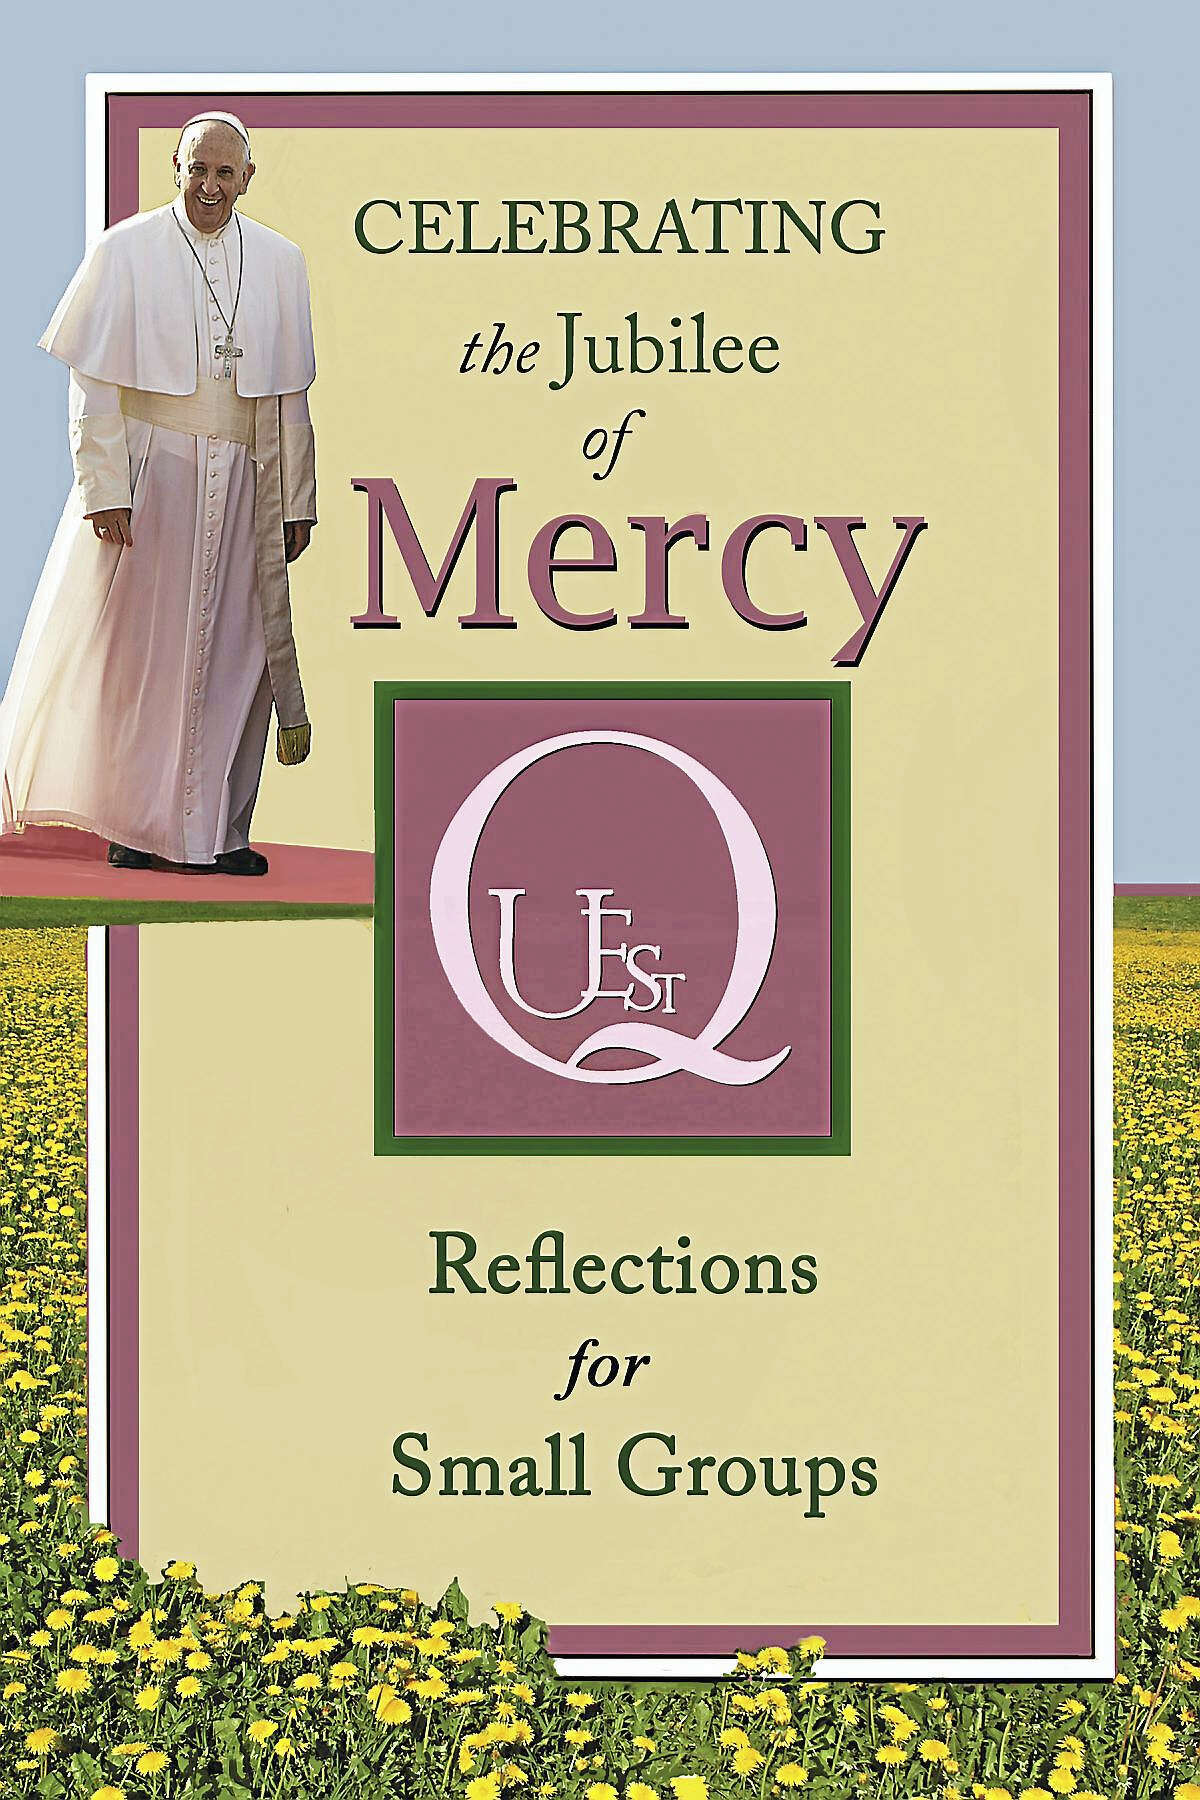 The cover of the Mercy Quest booklet.